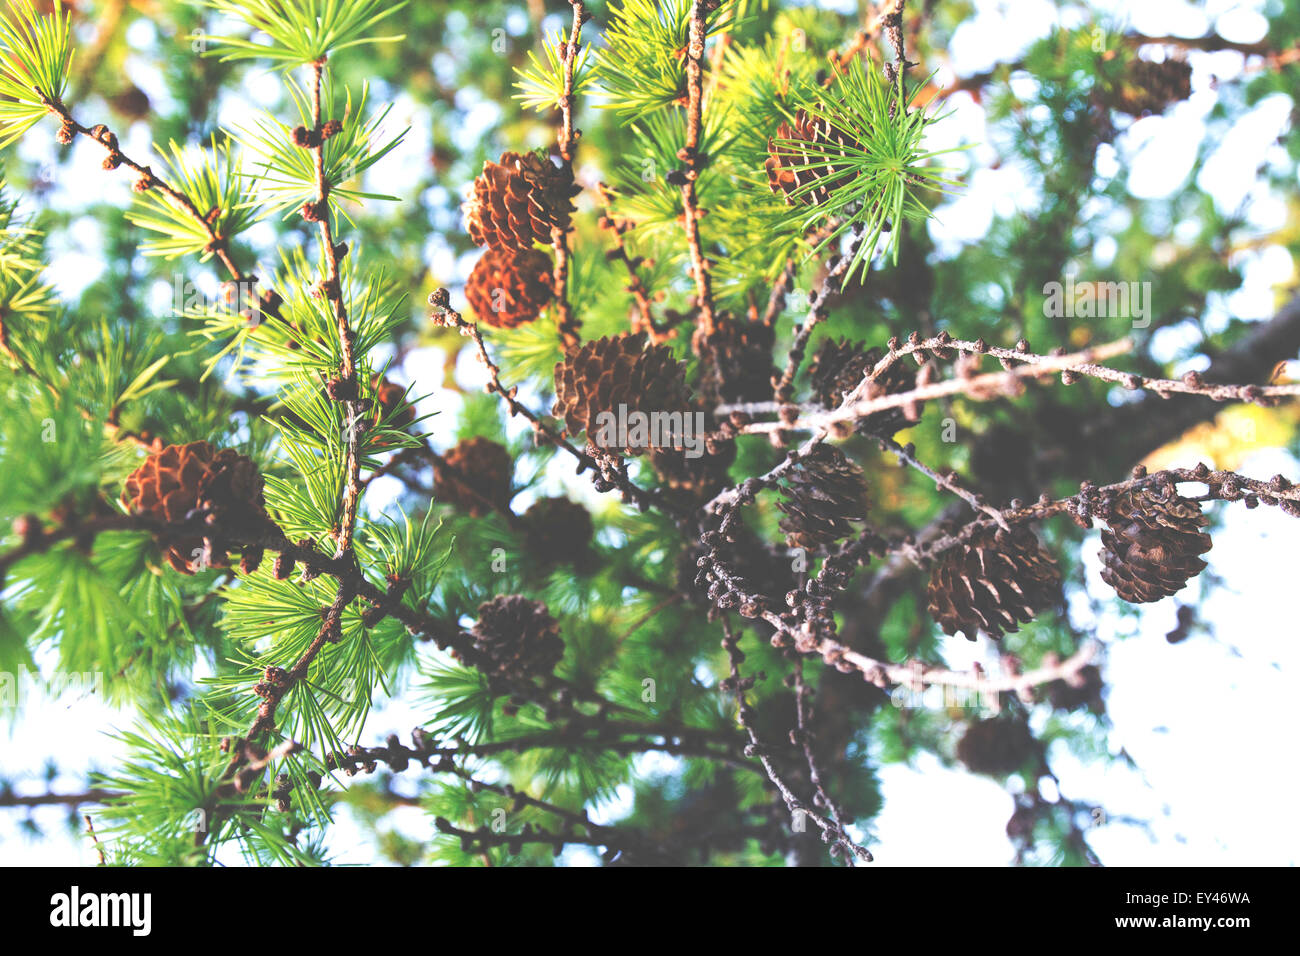 A tree filled with many small pinecones! - Stock Image